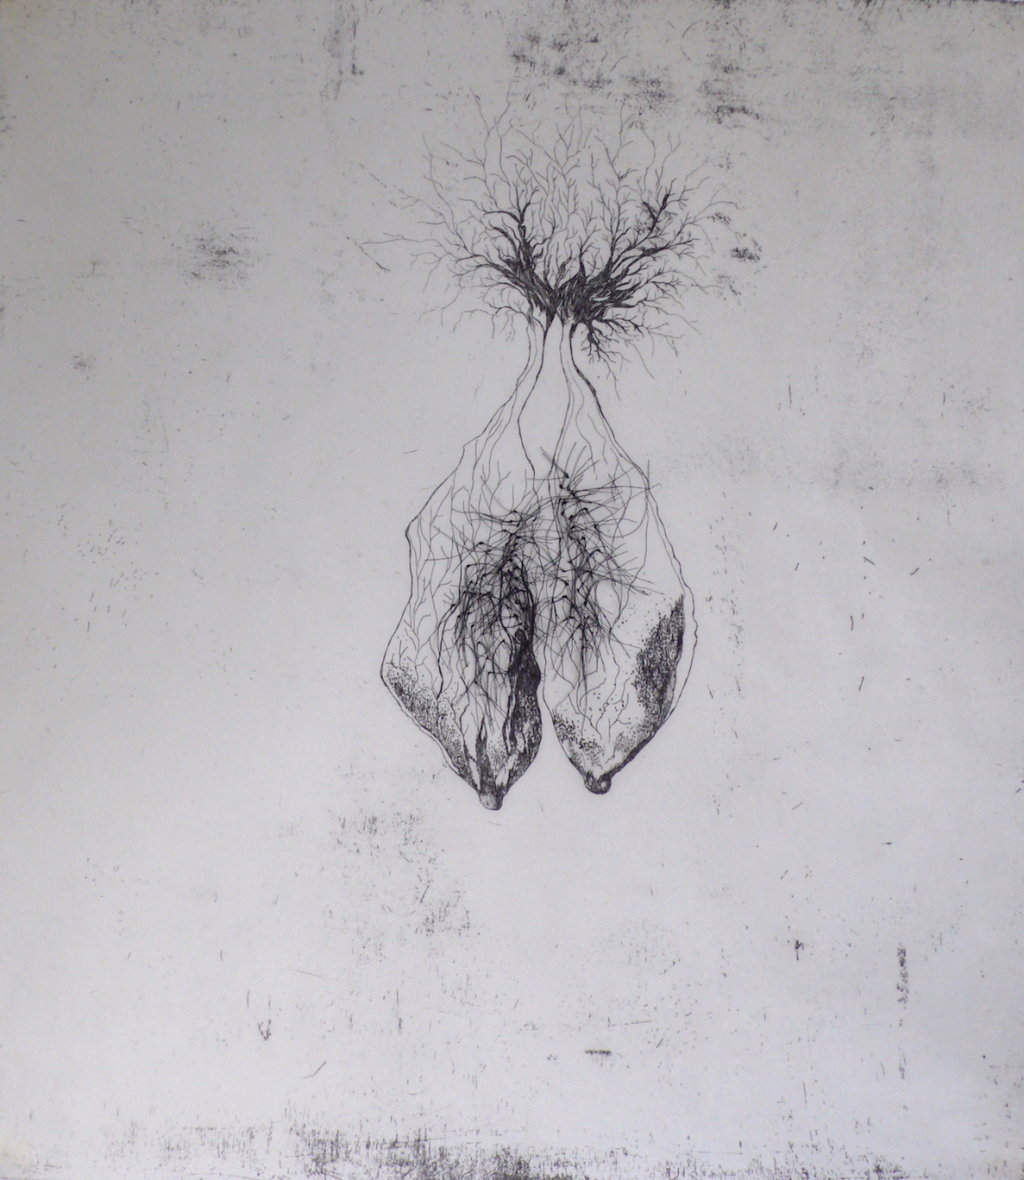 Pulmonem<br>Etching and thread on Japanese paper, edt 20 <br>60 x 54 cm, 2016